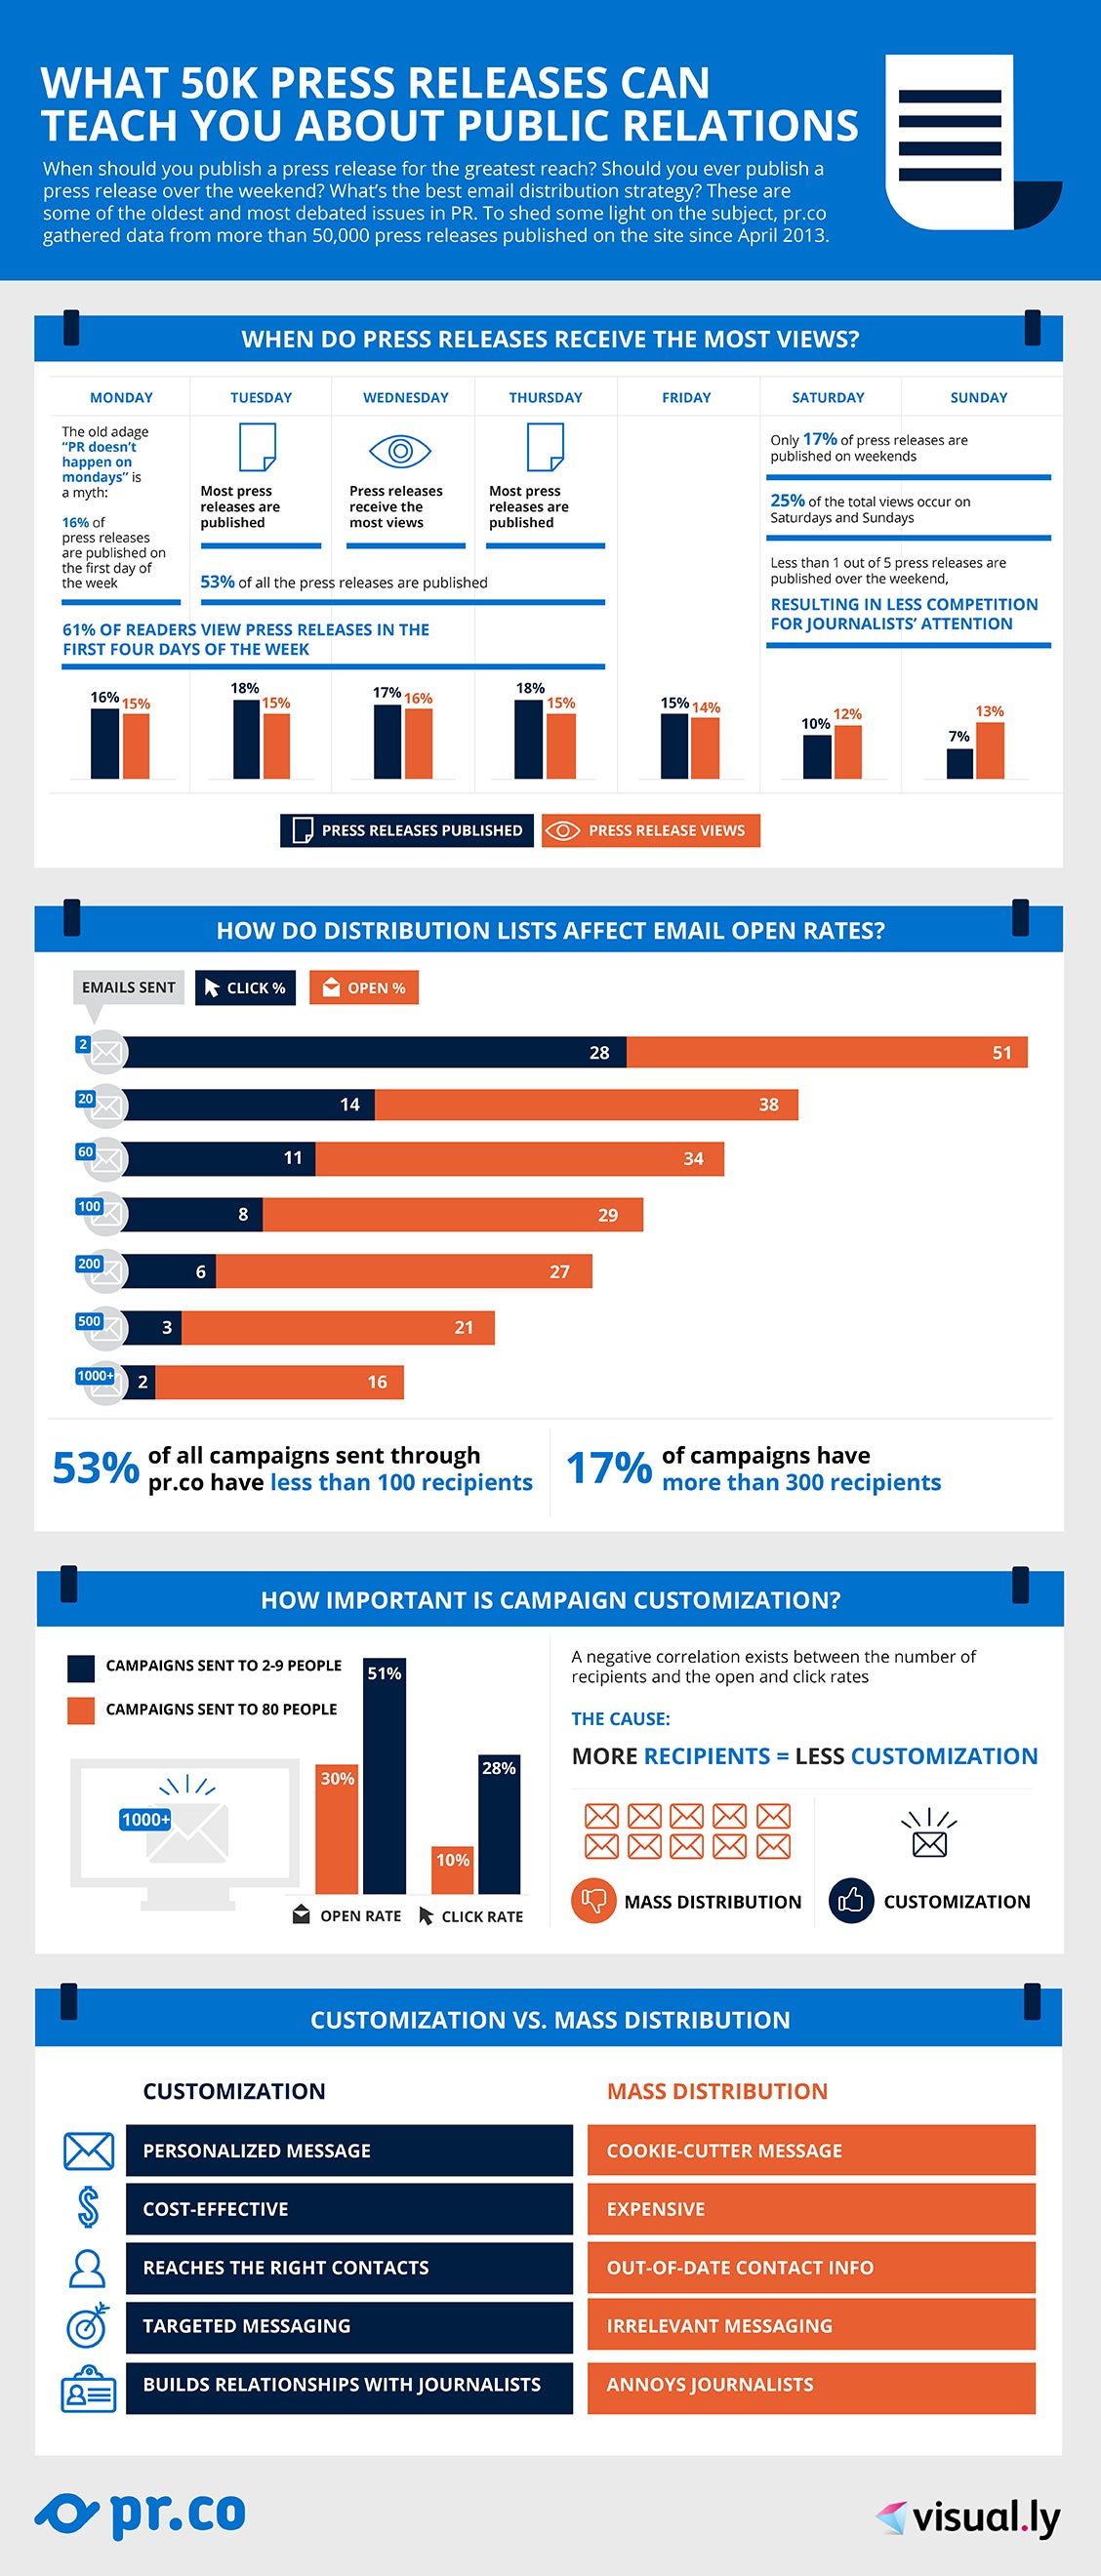 The Times When Press Releases Get the Most Views (Infographic)